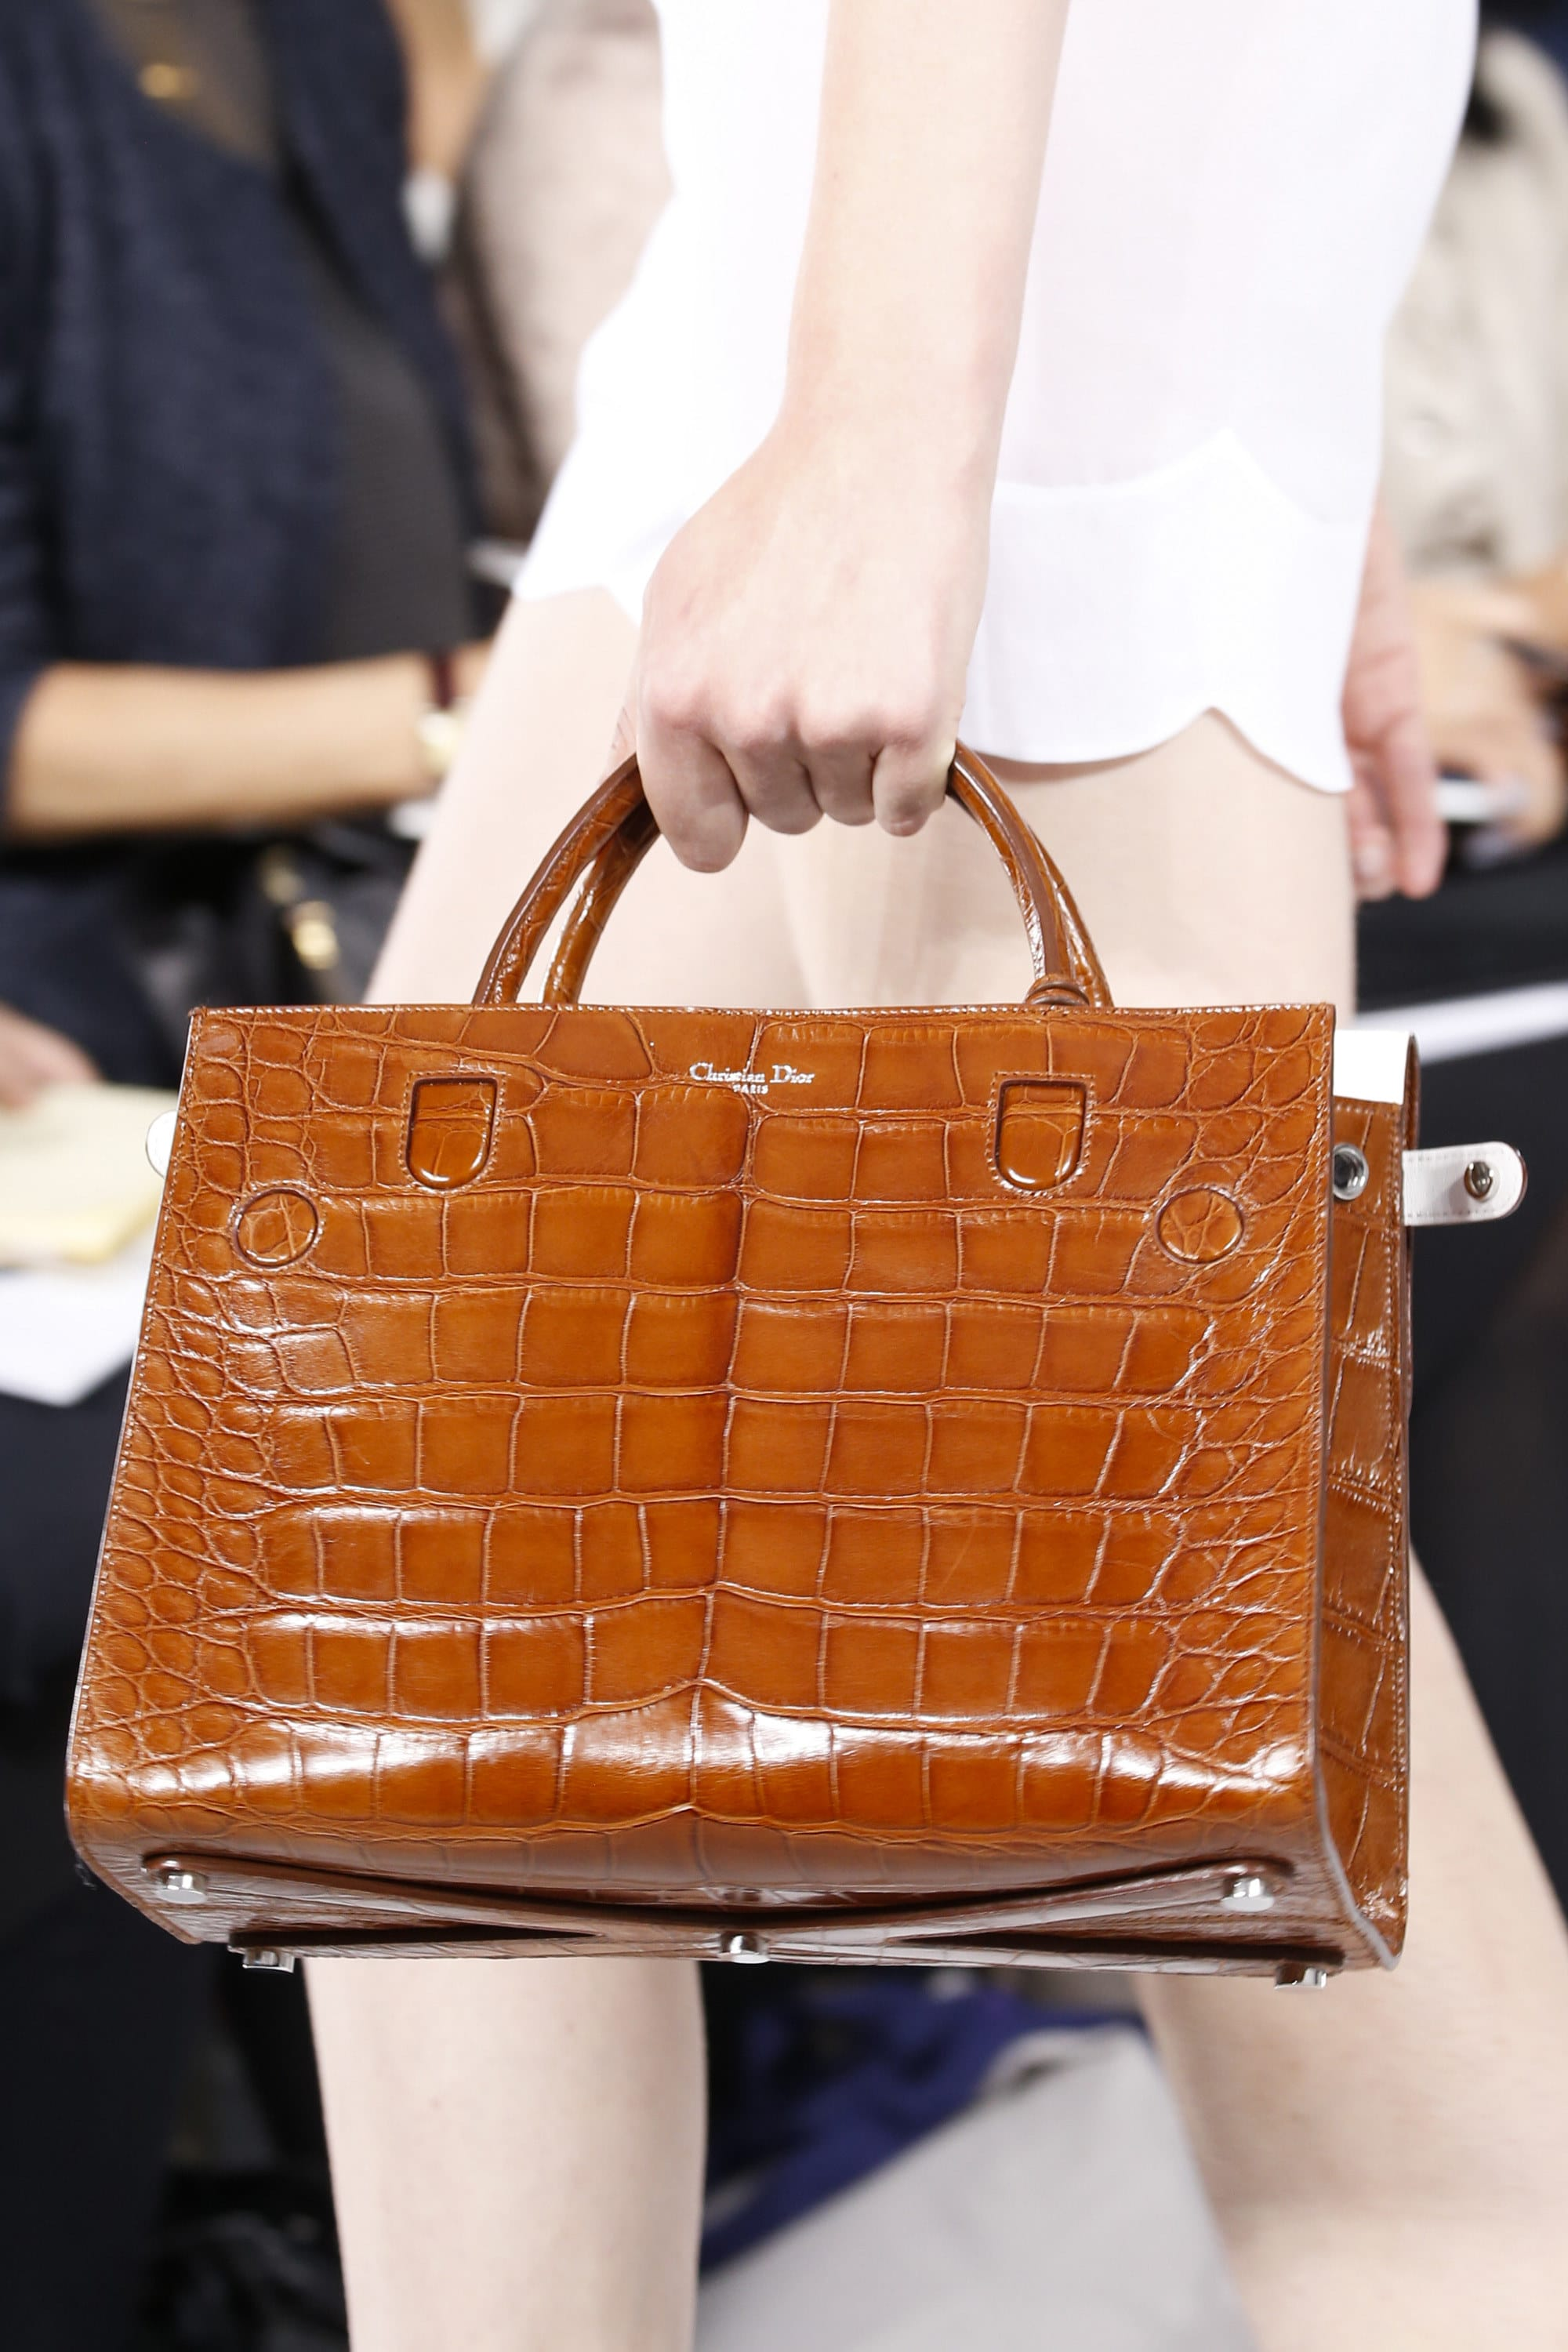 Dior Spring Summer 2016 Runway Bag Collection Featuring A